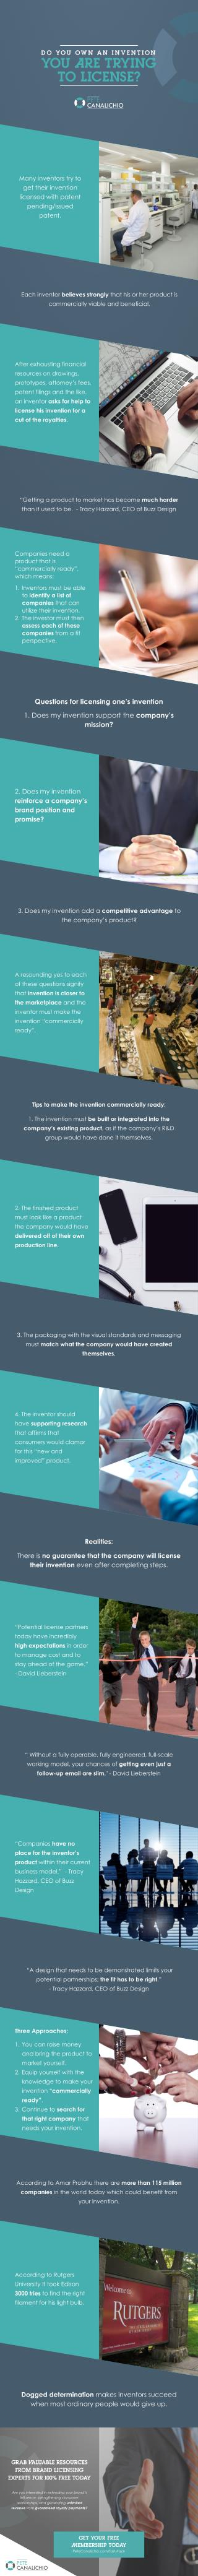 Do You Own an Invention You Are Trying to License | Brand Licensing | Brand